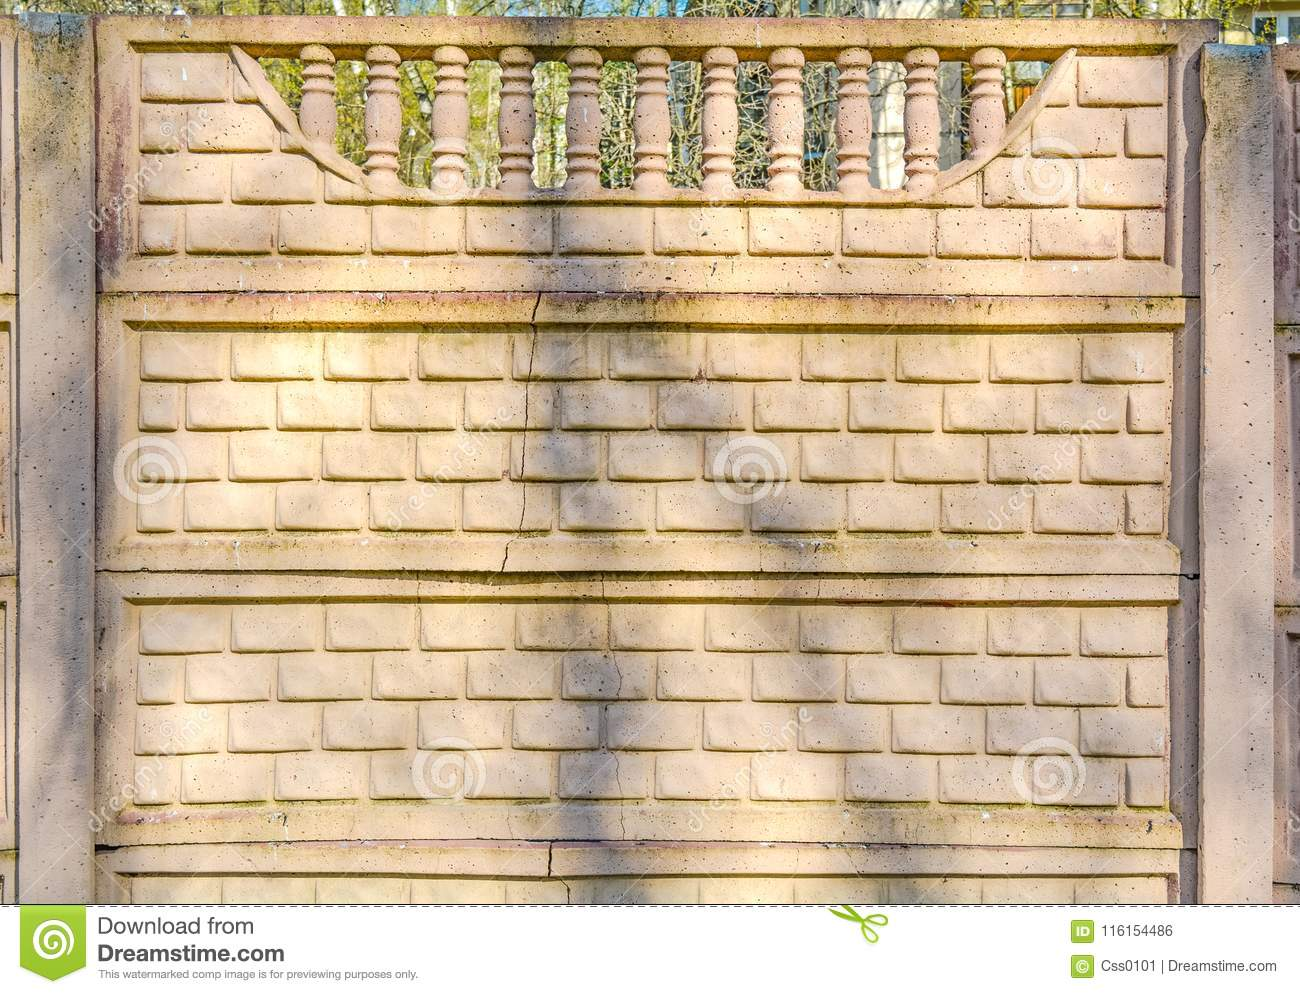 Decorative Wall Of Bricks Fence Wall With Pillars On Top Stock Photo ...